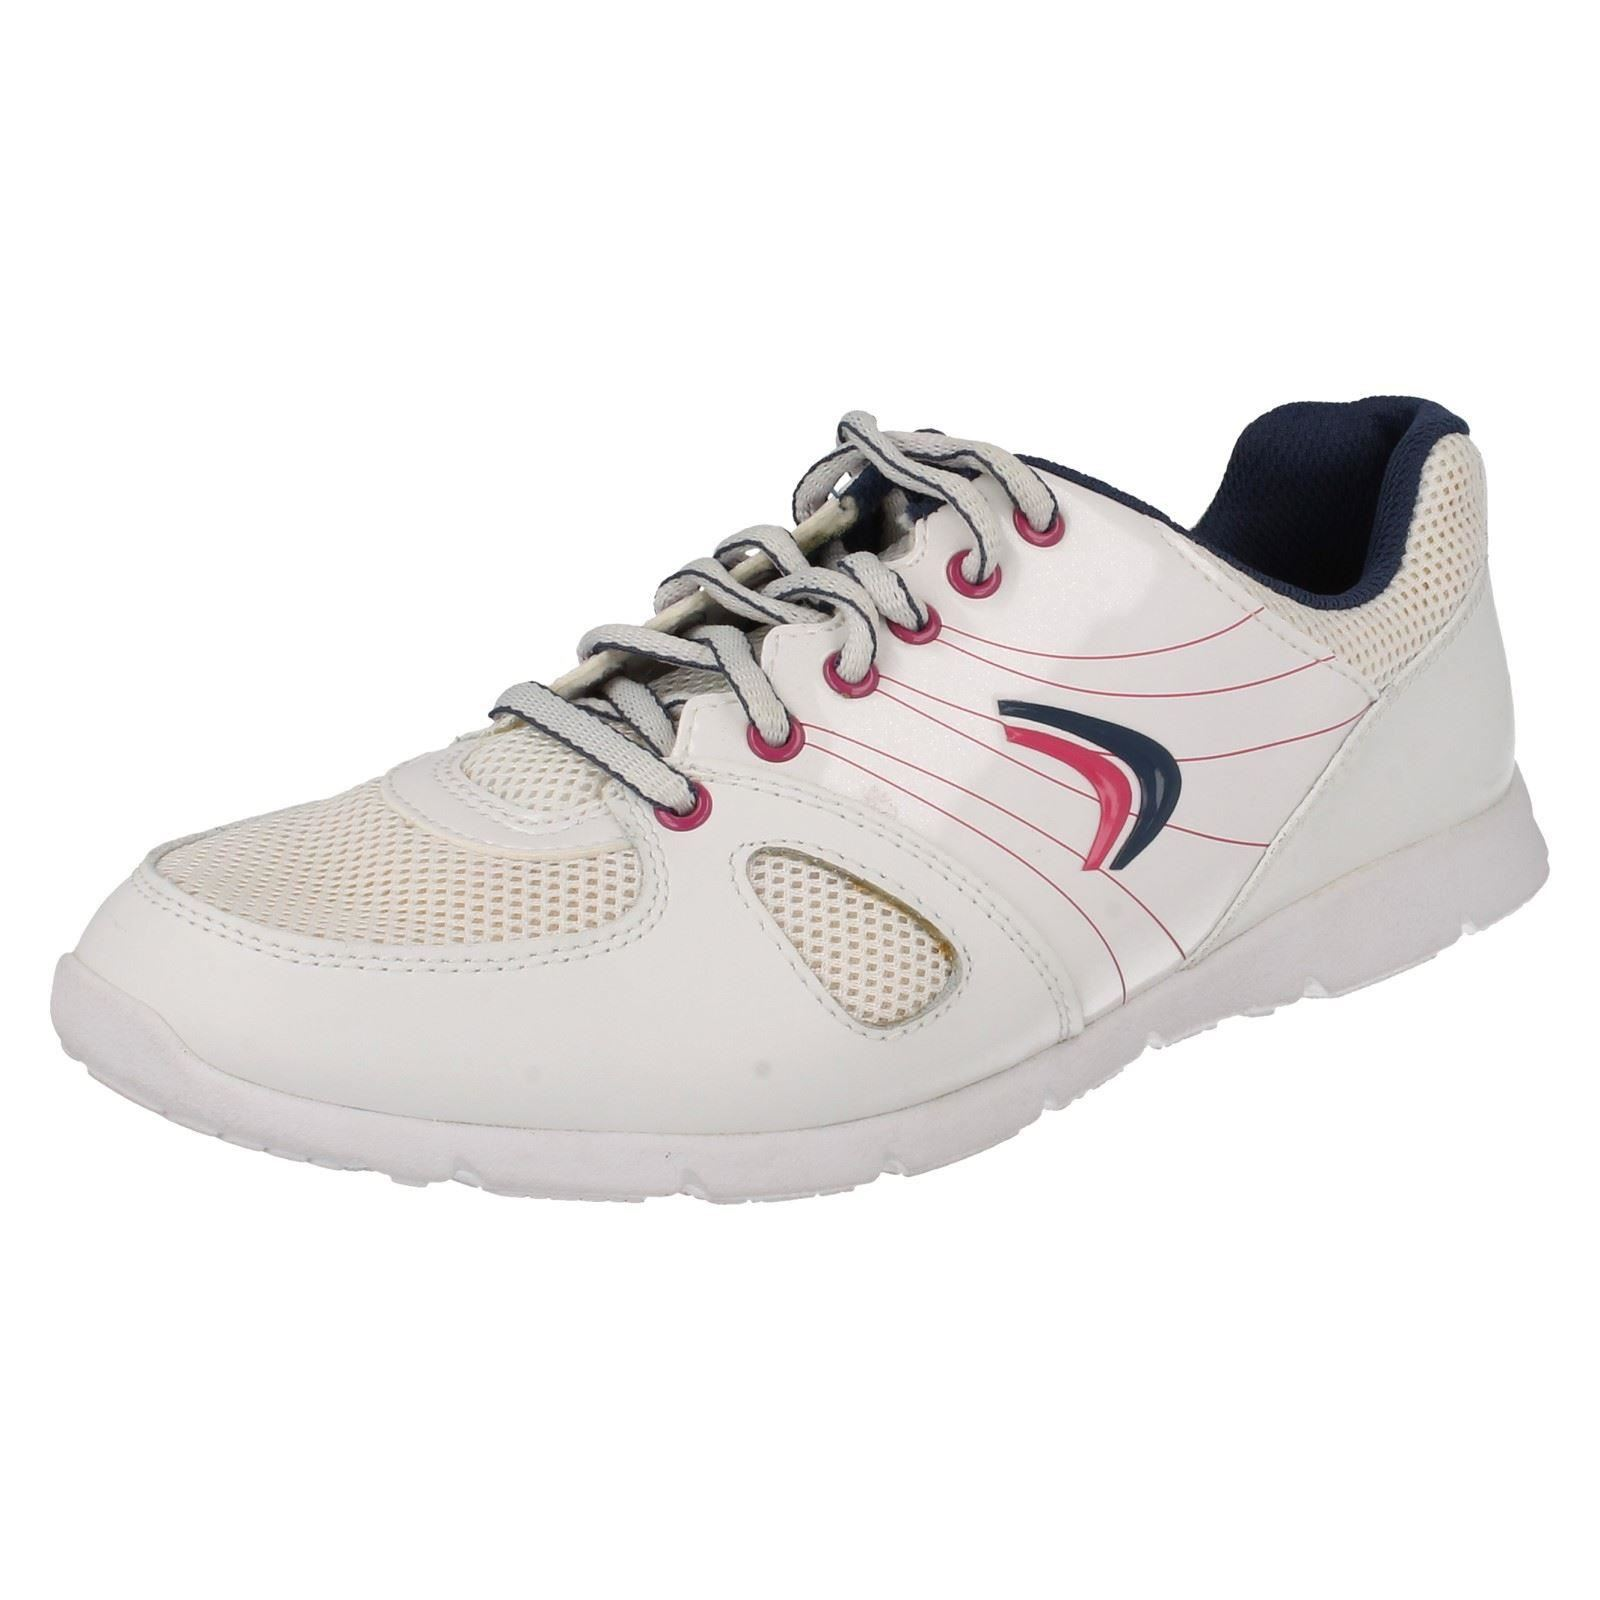 Girls Bootleg by Clarks Casual Lace Up Trainers Prance Twirl